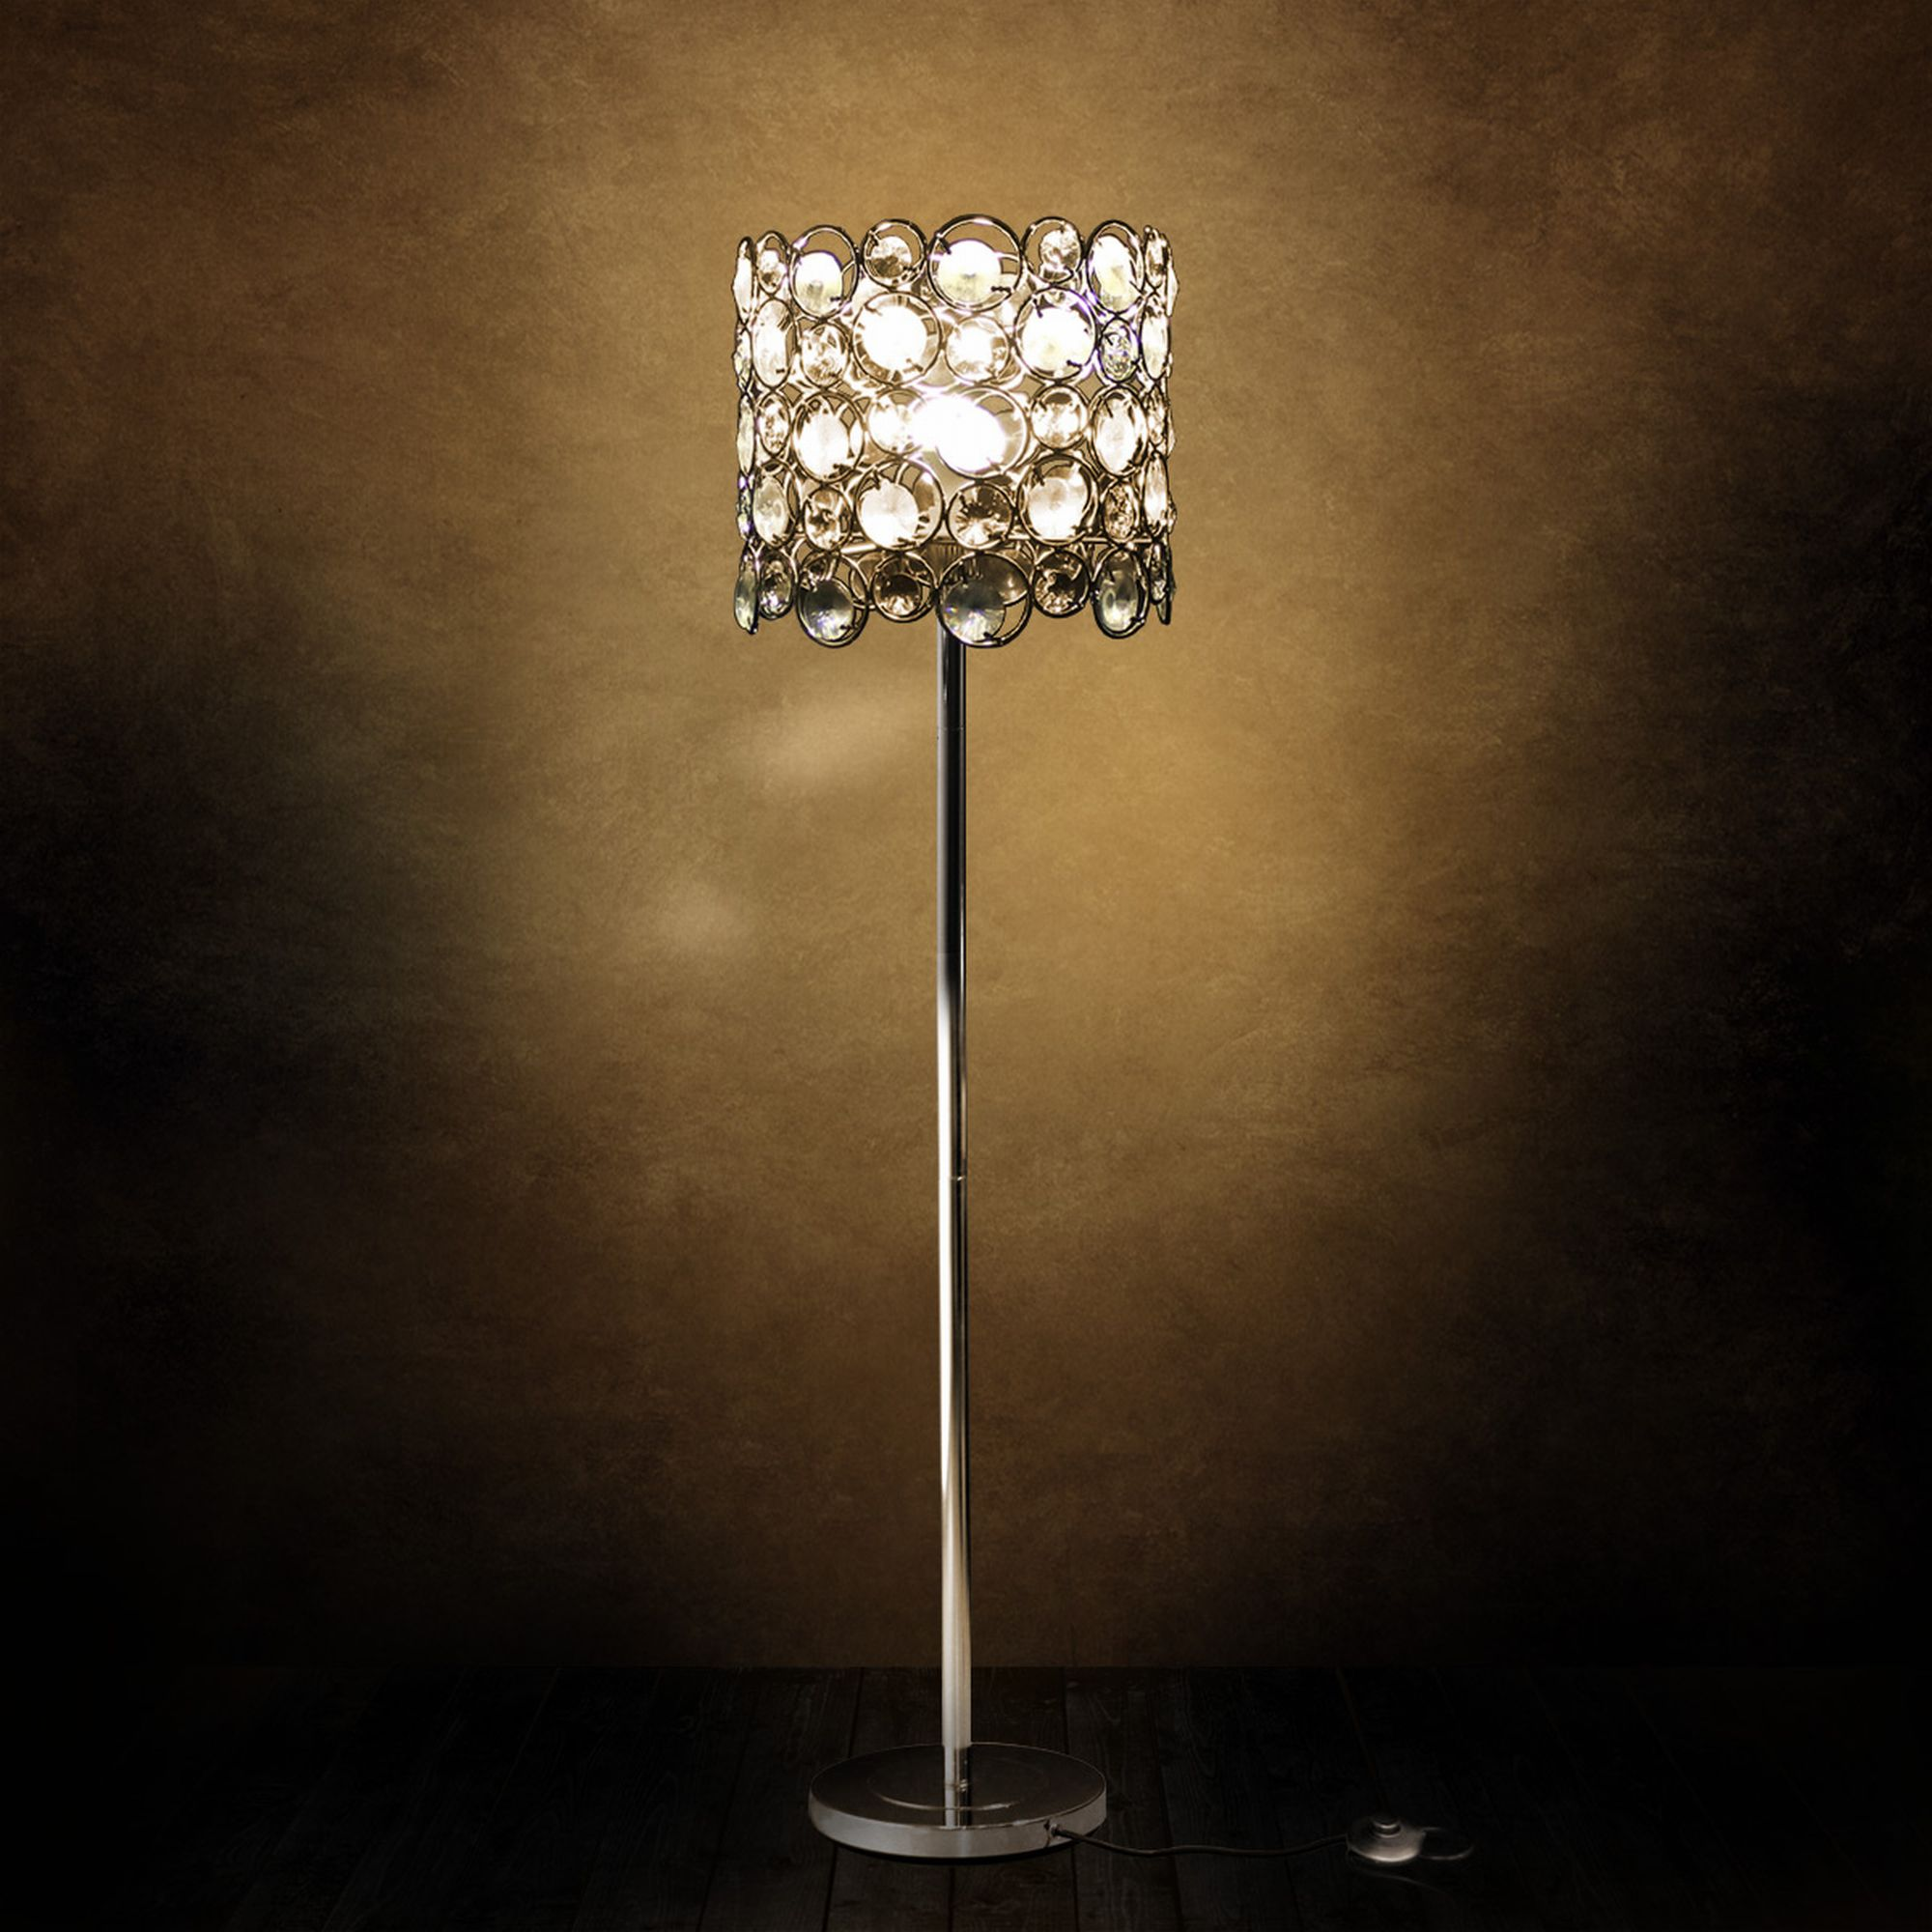 crystal floor lamp standard lamp living room lamp light floor light ebay. Black Bedroom Furniture Sets. Home Design Ideas